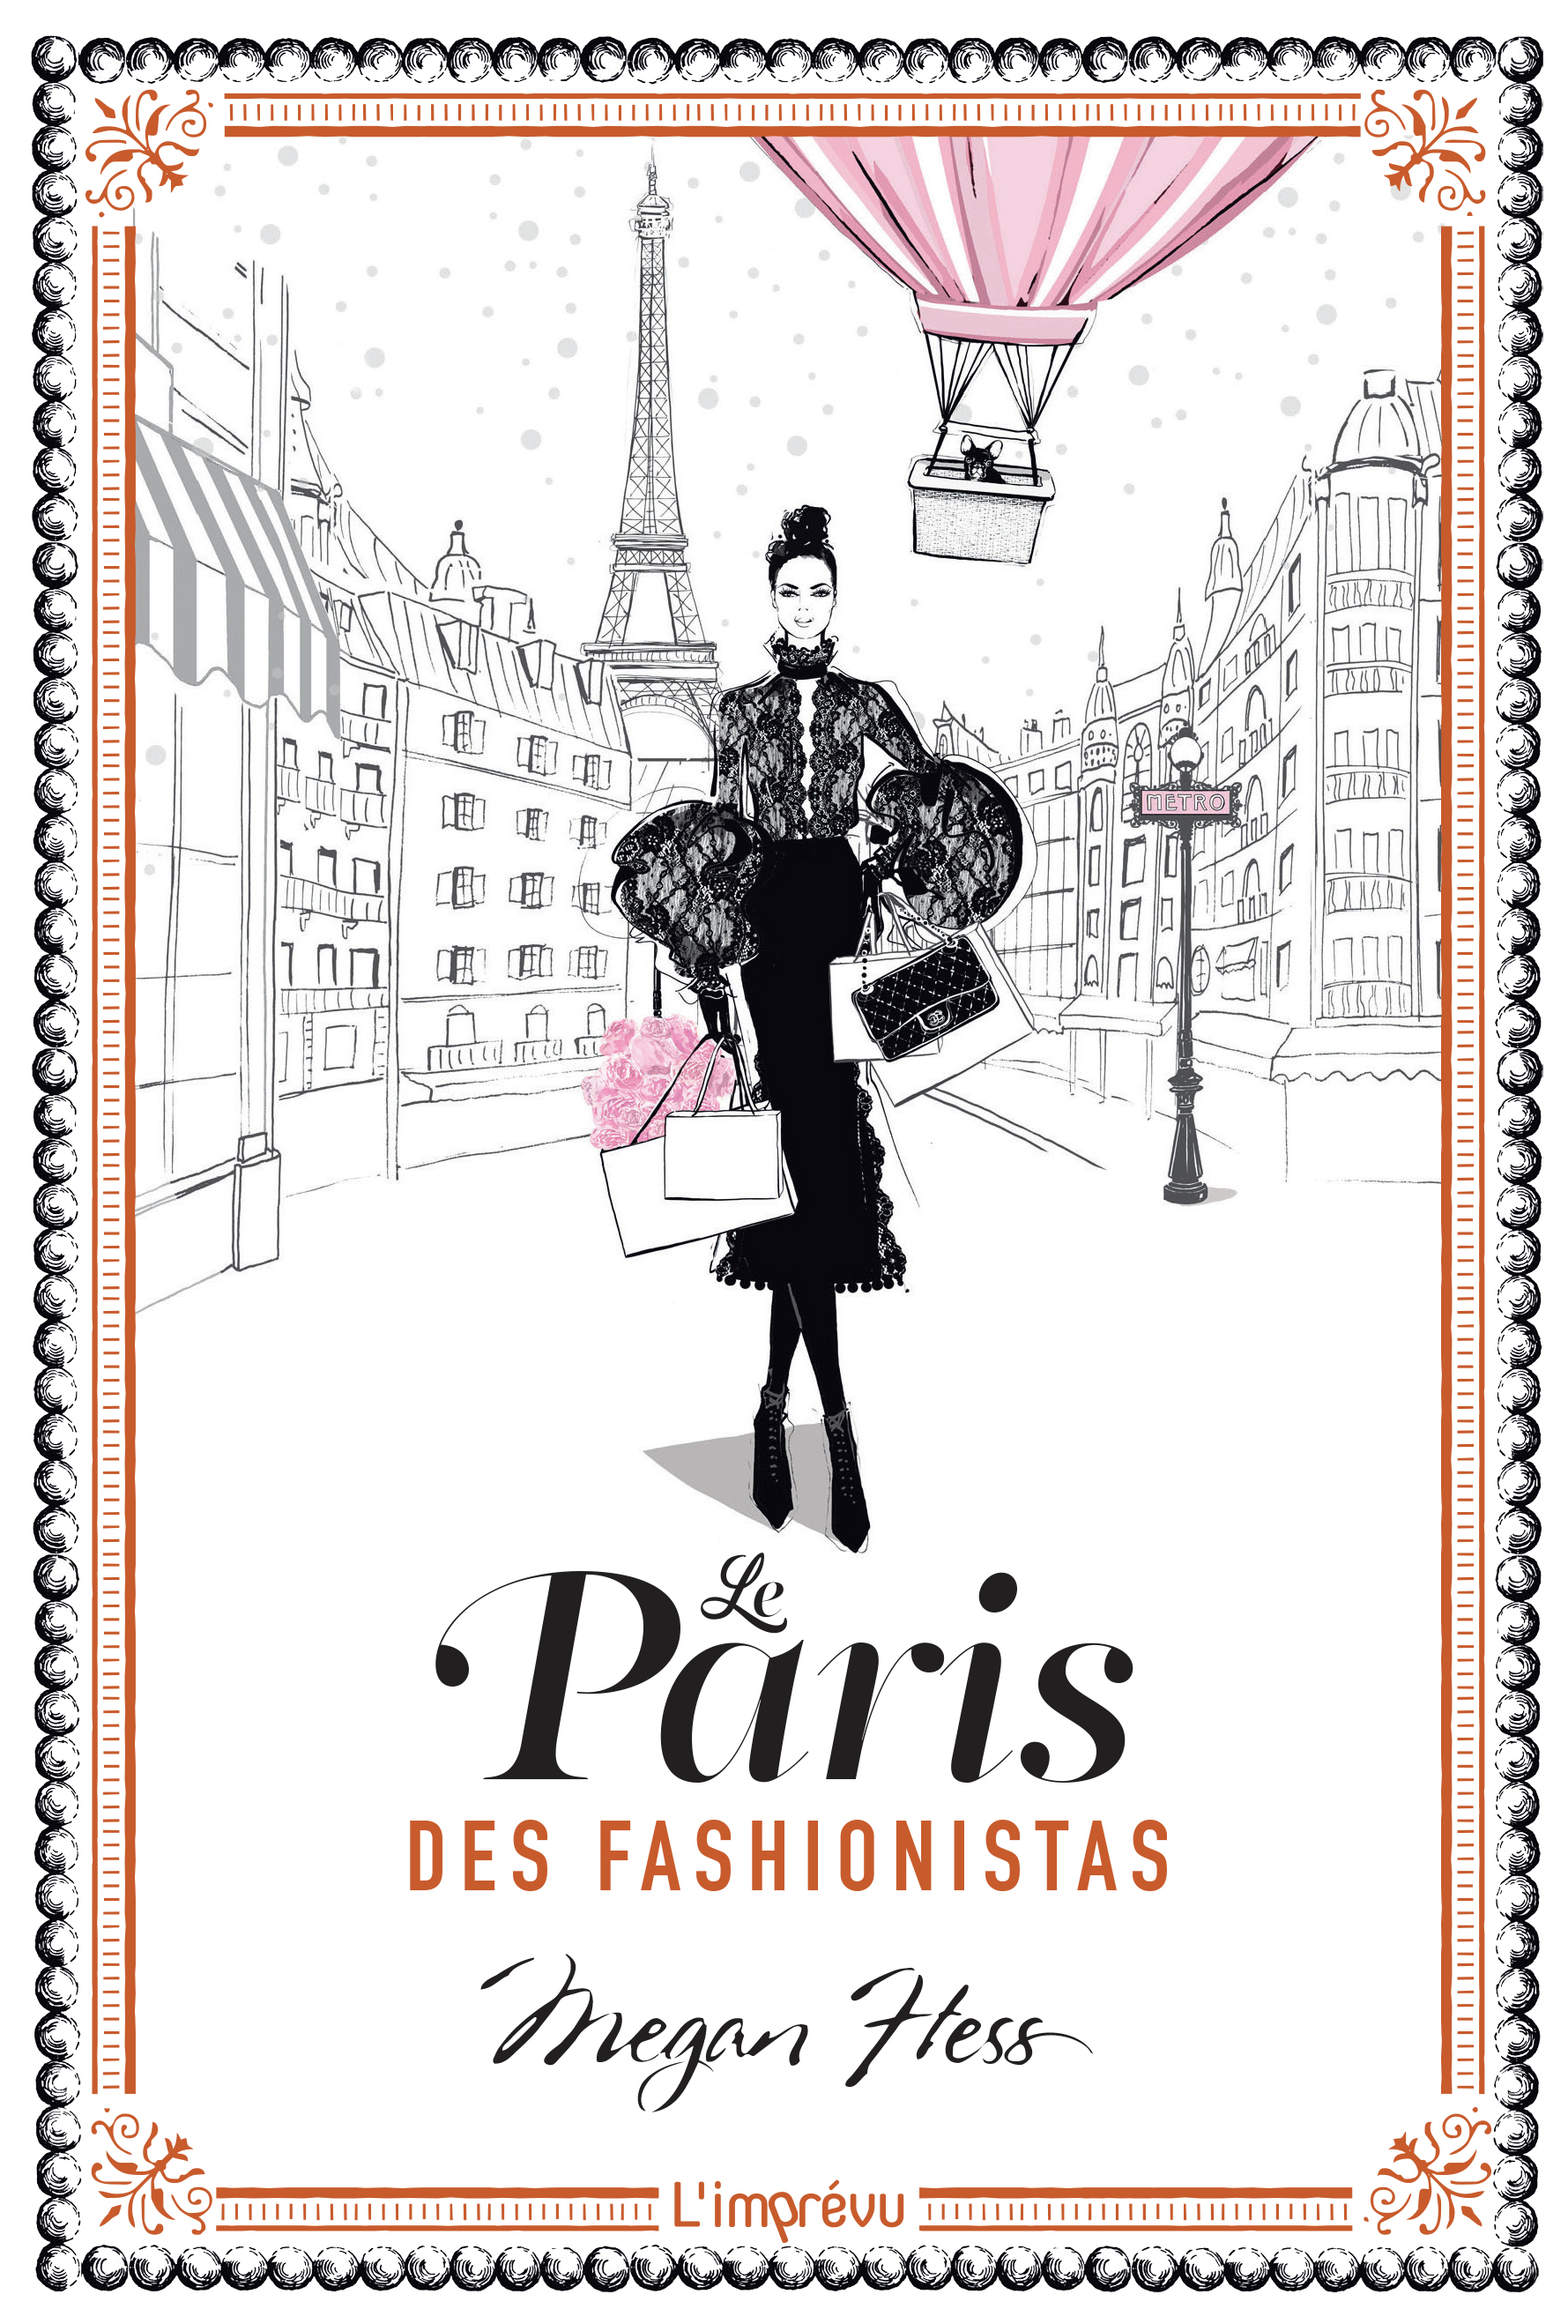 PARIS DES FASHIONISTAS (LE)